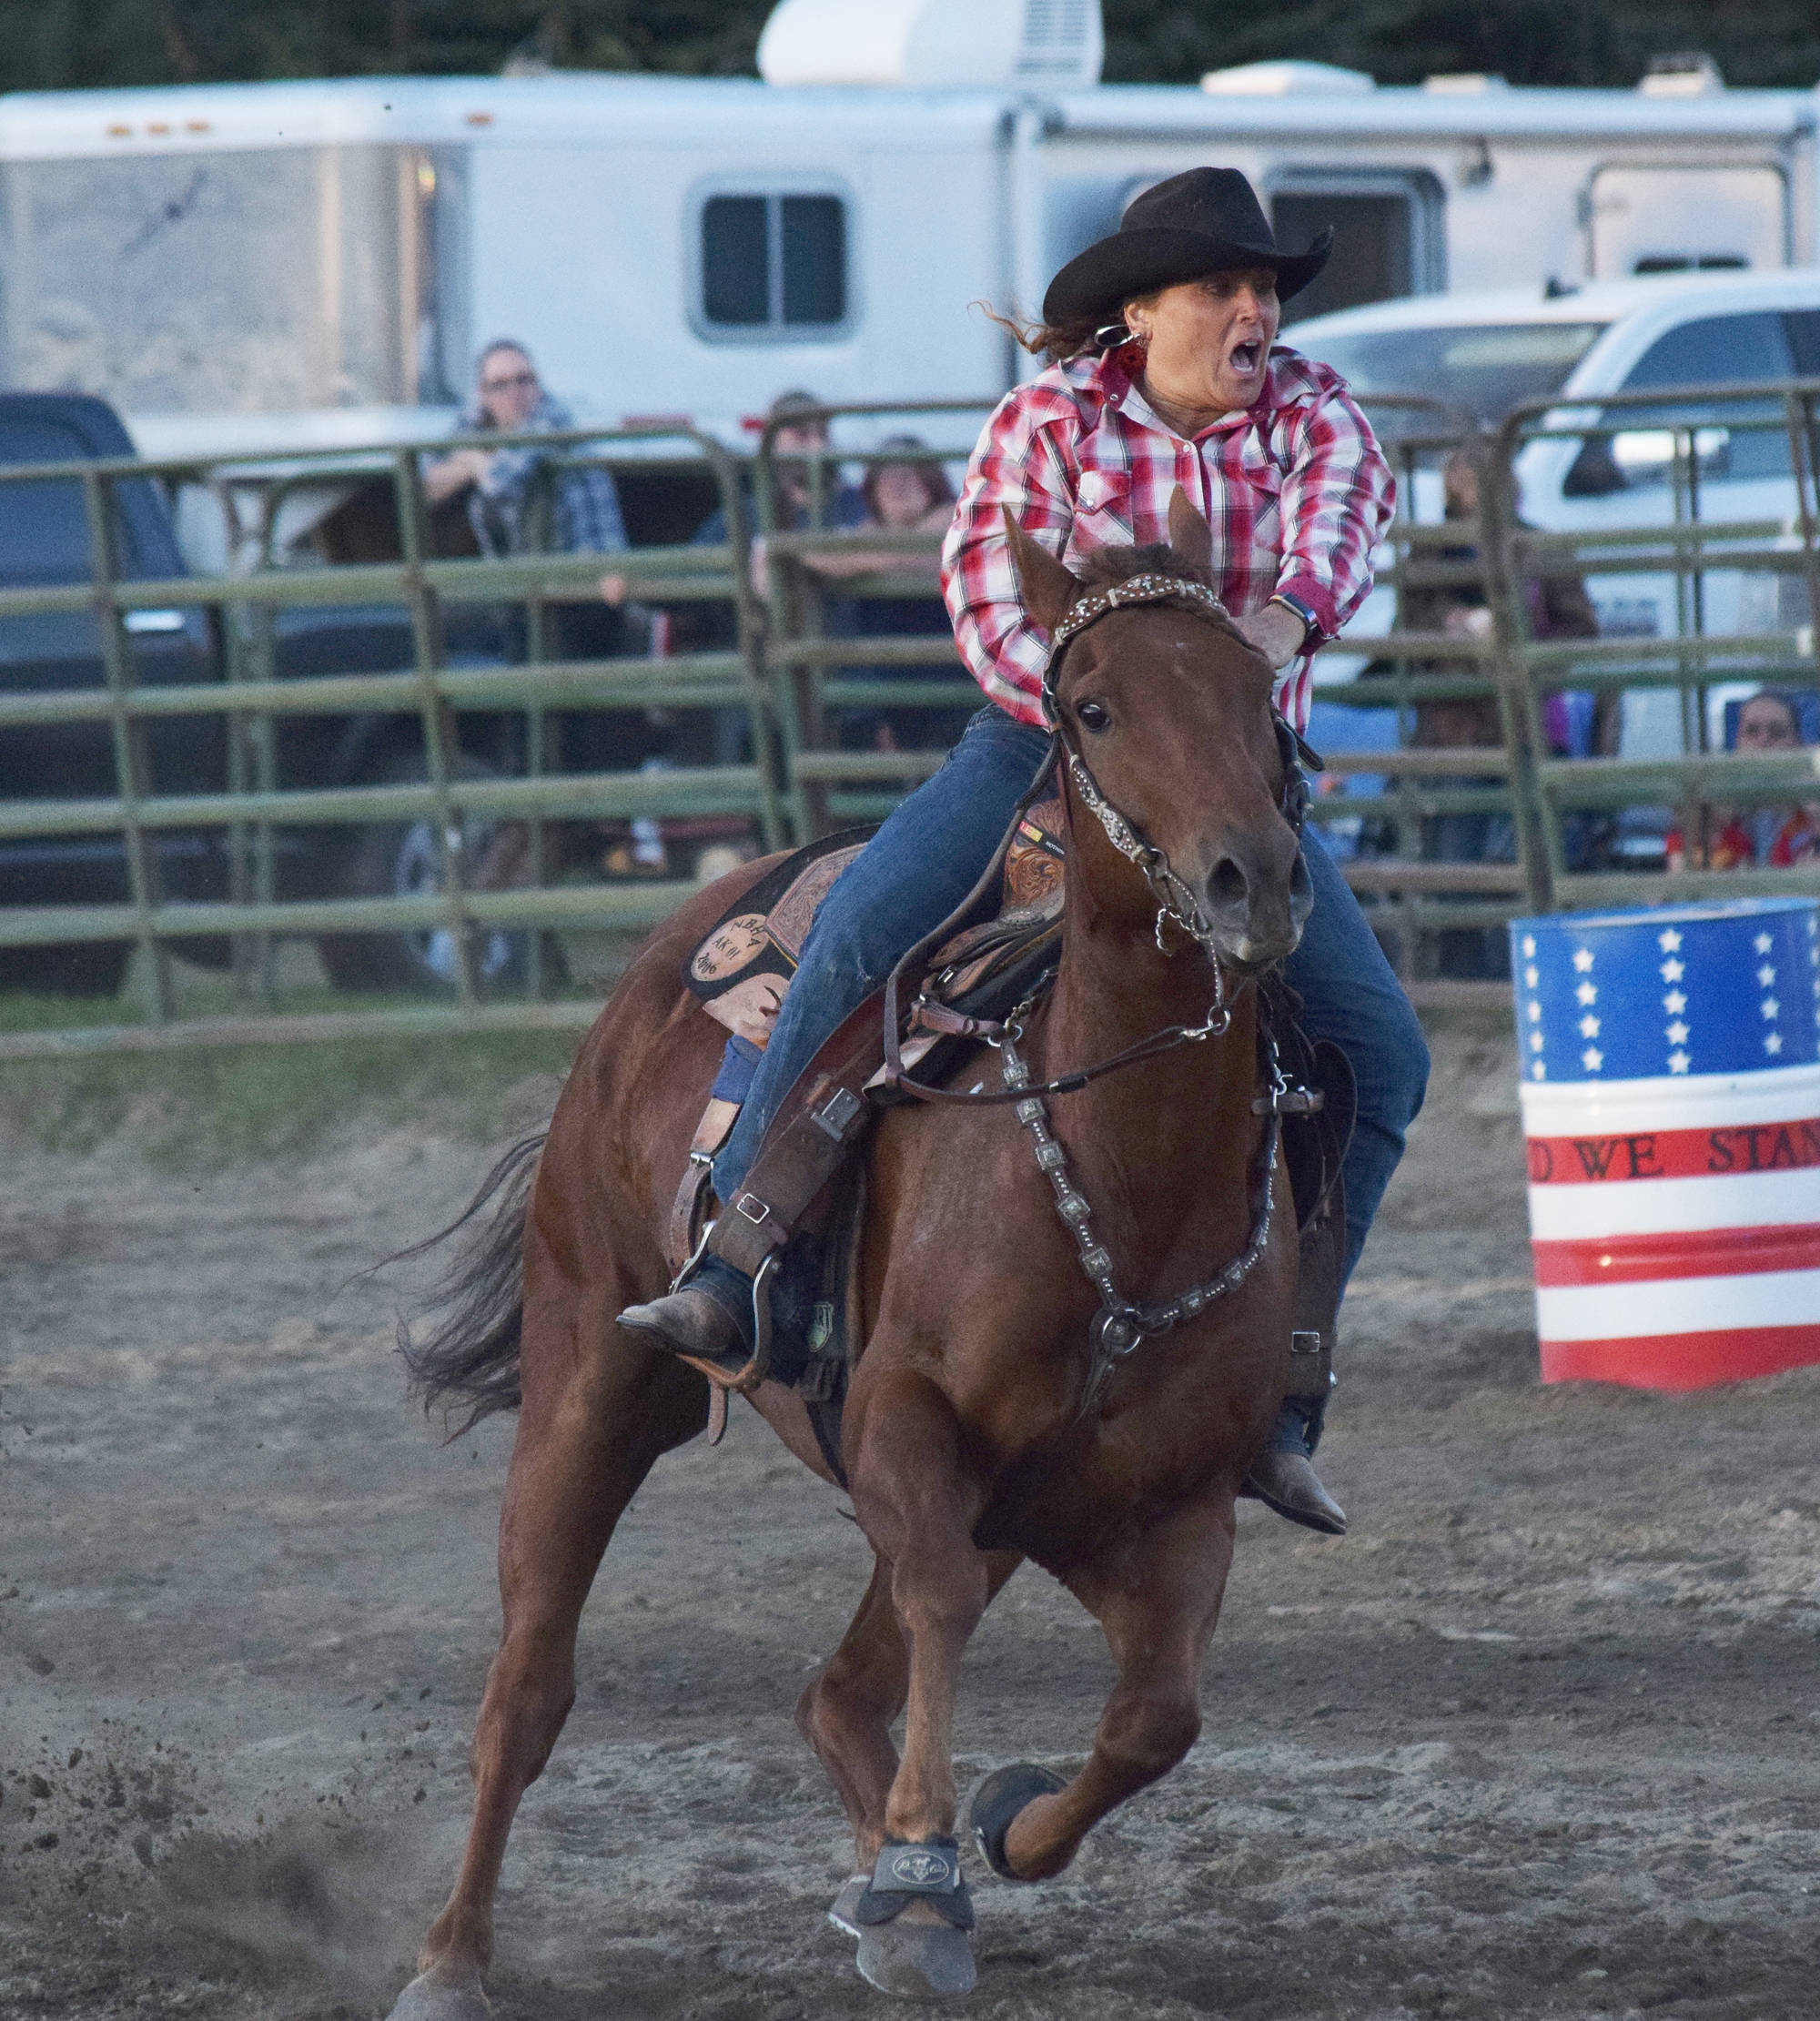 Cassie McKenzie completes a barrel racing circuit Saturday at the 9/11 Tribute Rodeo at the Soldotna Rodeo Grounds. (Photo by Joey Klecka/Peninsula Clarion)